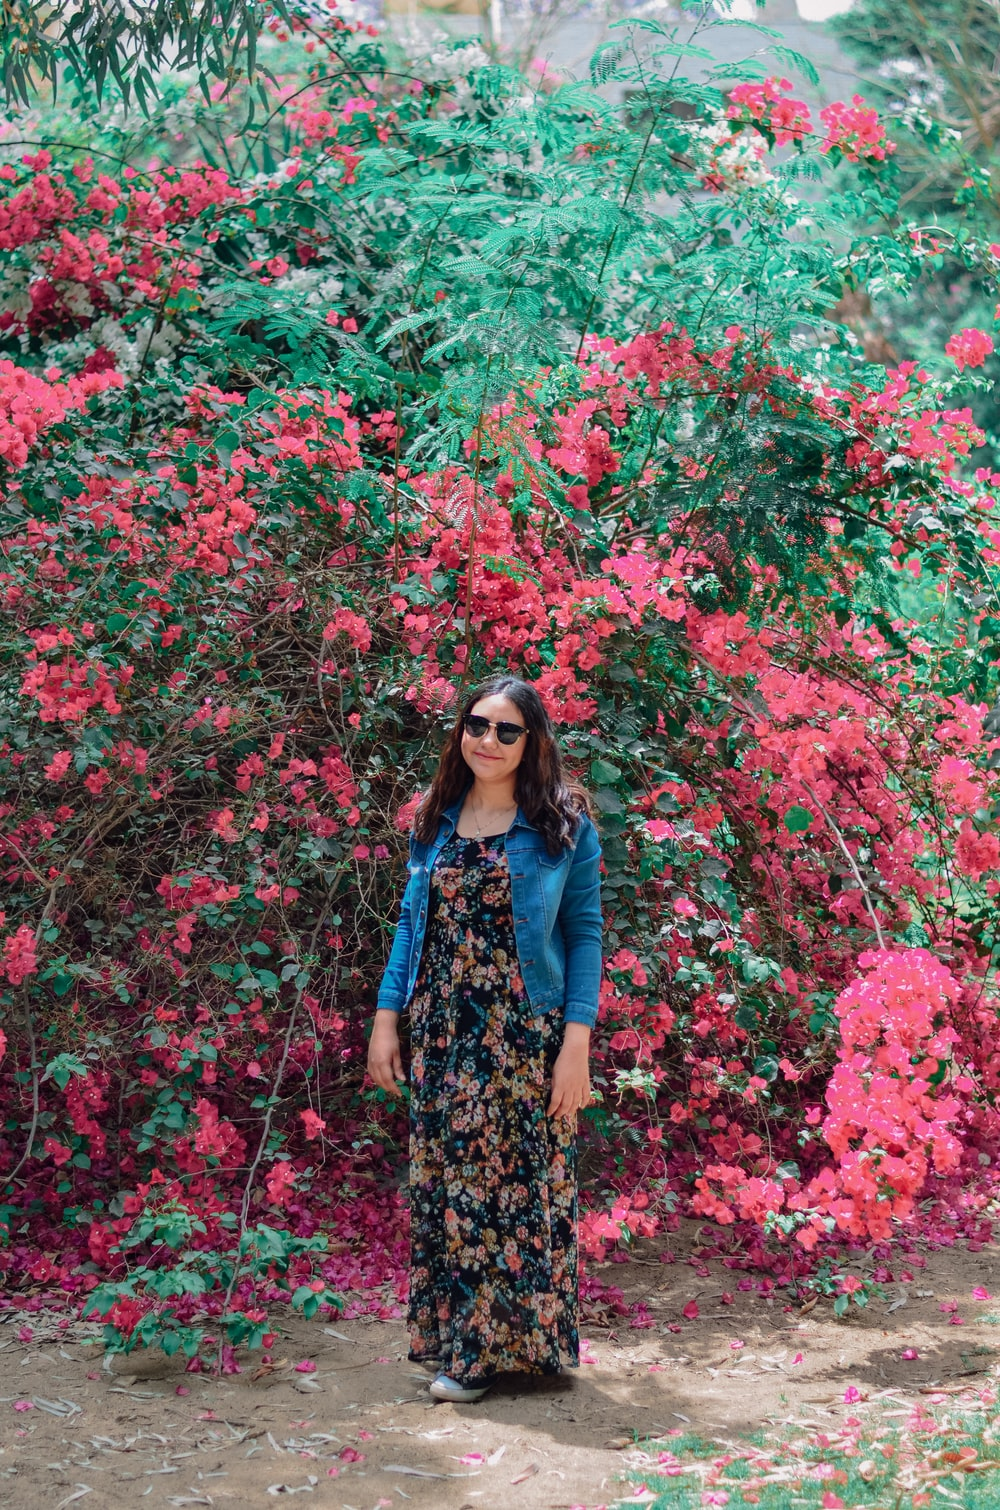 black and brown floral dress standing beside flower